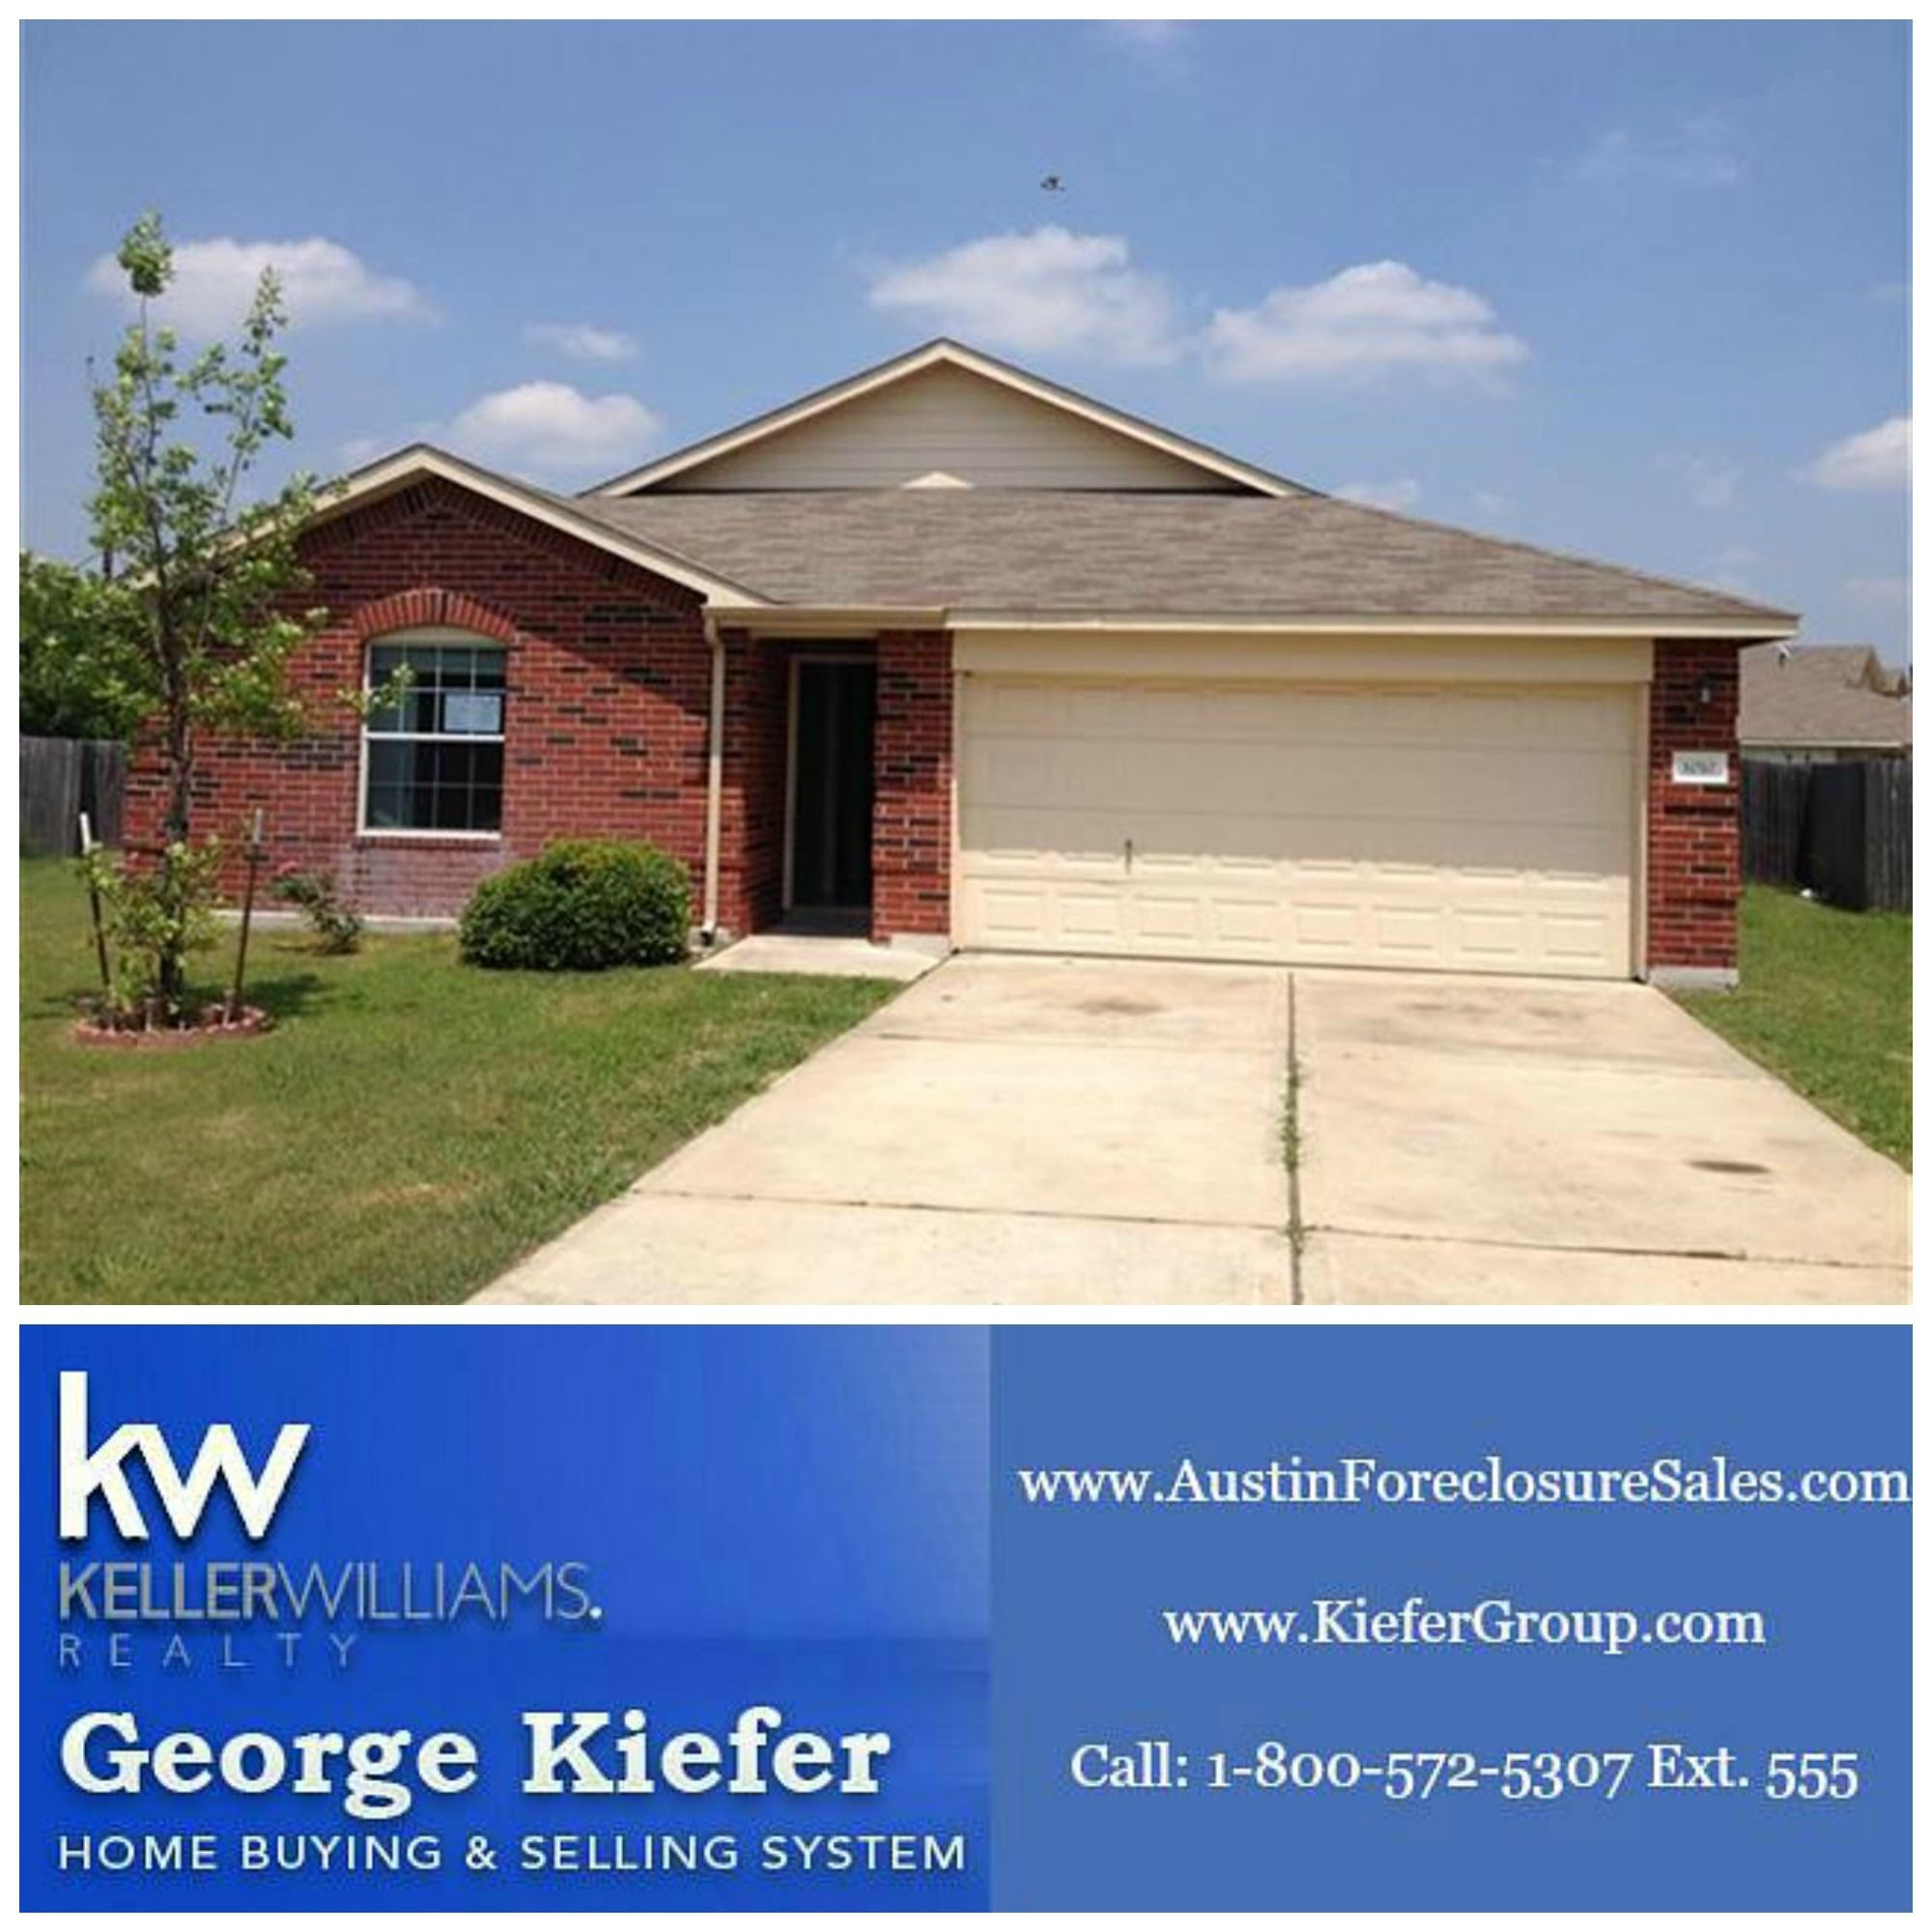 Apartments For Sale Texas: 0.31-Acre 1-Story HUD Home In Georgetown Texas $166,000